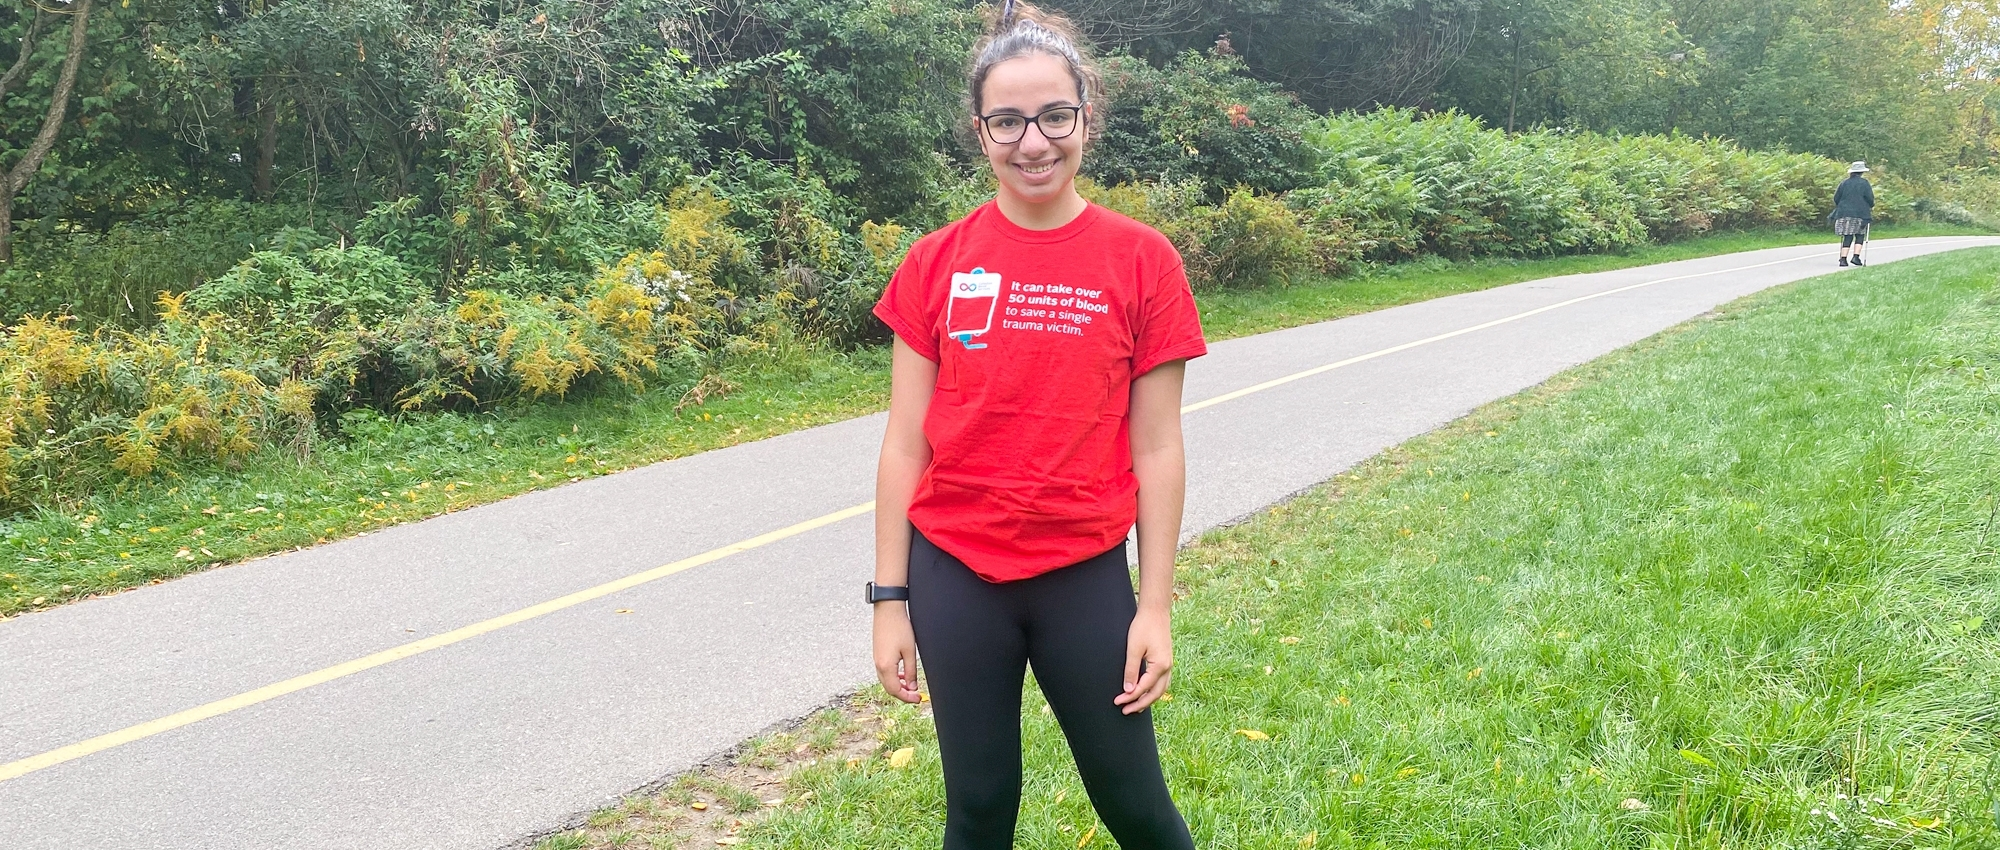 Natalie Pallisco plasma recipient and blood donor posing while out for a run